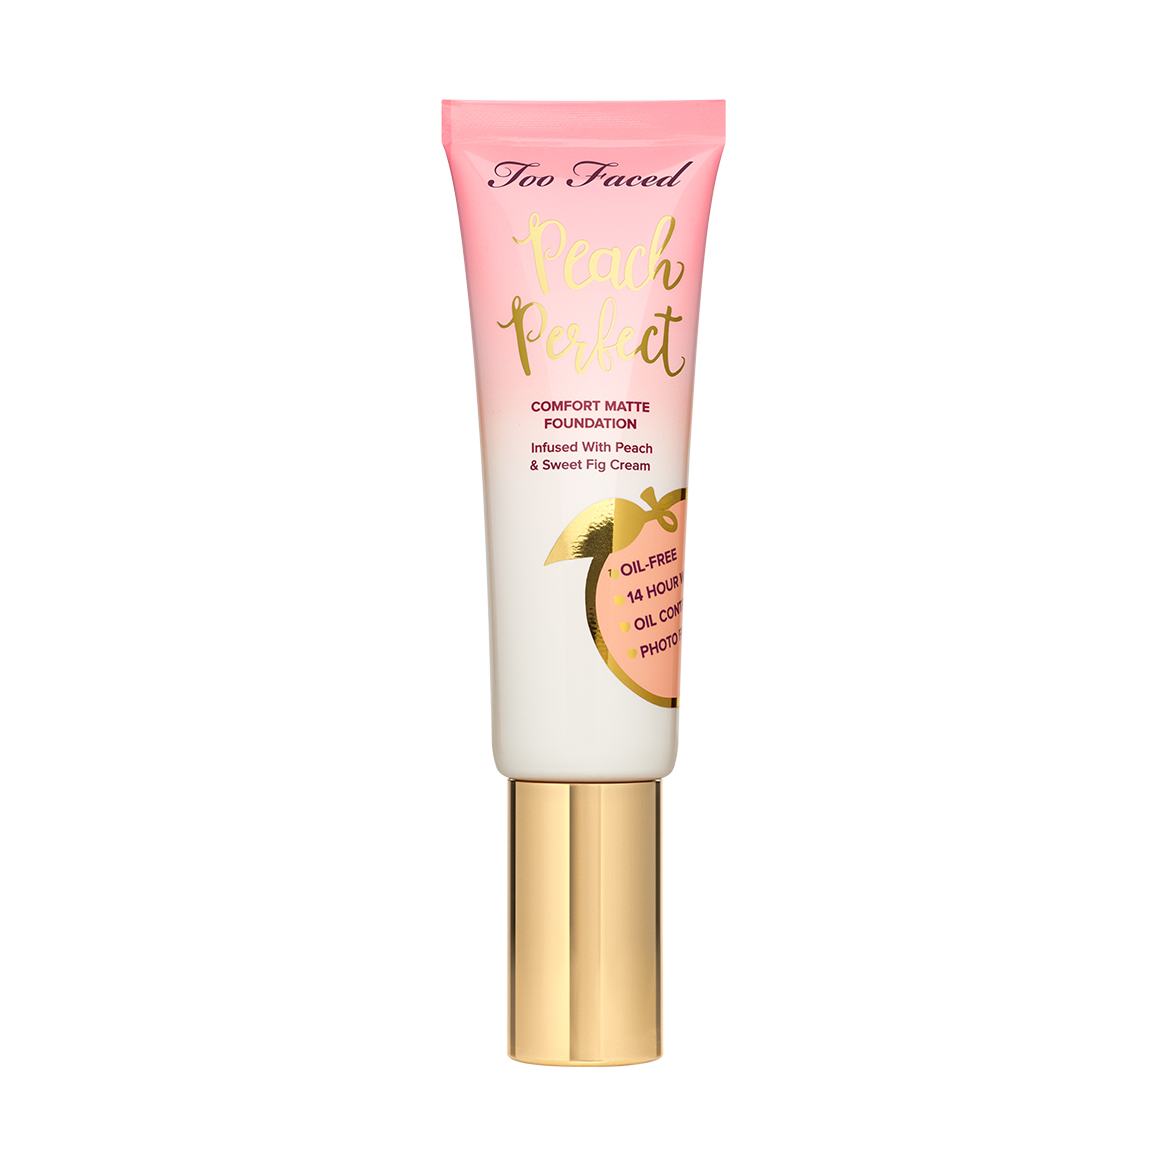 Too Faced Peach Perfect Comfort Matte Foundation - Peaches and Cream Collection